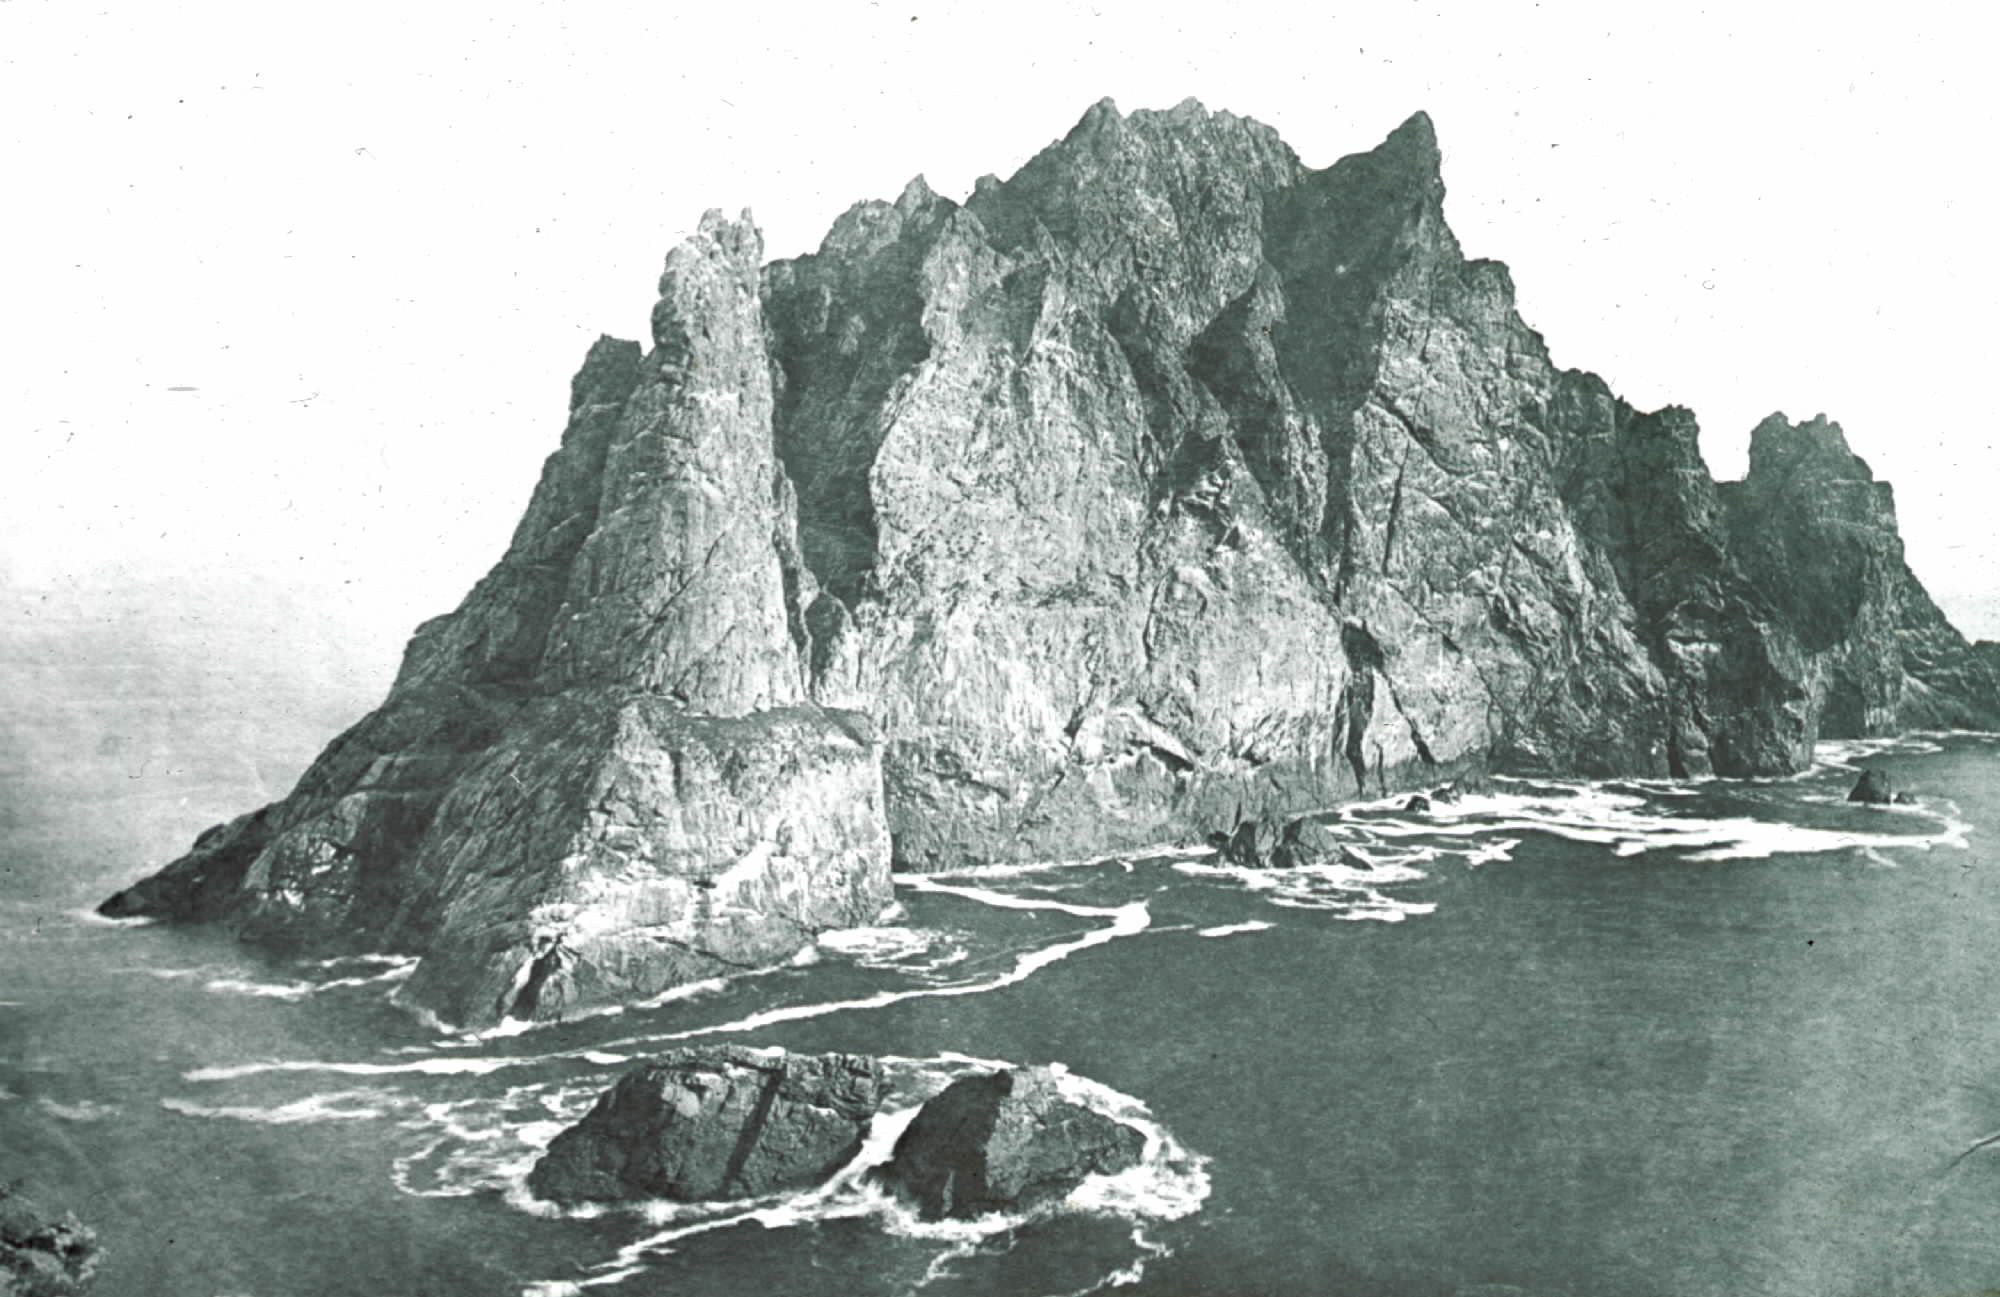 Fig. 4: Glass plate negative of Boreray in the St Kilda archipelago, #192 © National Trust for Scotland, St Kilda